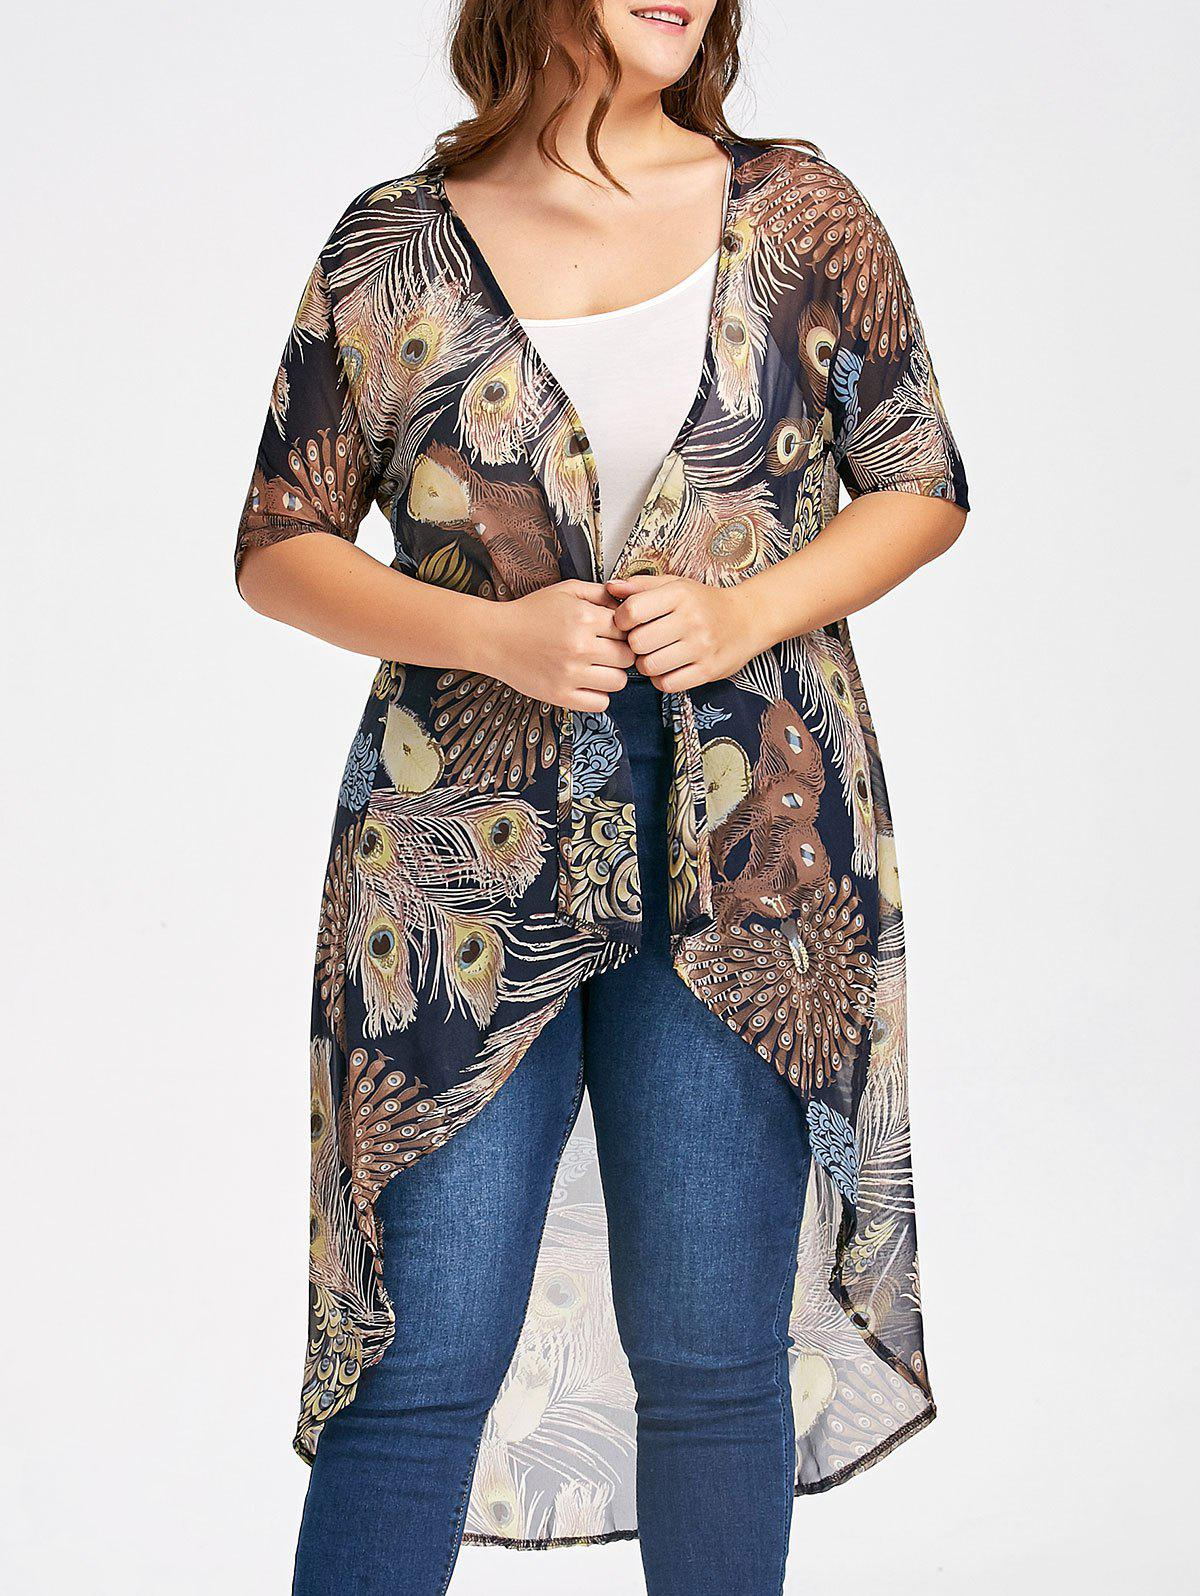 Plus Size Feather Printed  Long Chiffon Kimono TopWOMEN<br><br>Size: 4XL; Color: BROWN; Material: Polyester; Fabric Type: Chiffon; Shirt Length: Long; Sleeve Length: Short; Collar: Collarless; Style: Fashion; Season: Fall,Spring; Pattern Type: Print; Weight: 0.1500kg; Package Contents: 1 x Top;